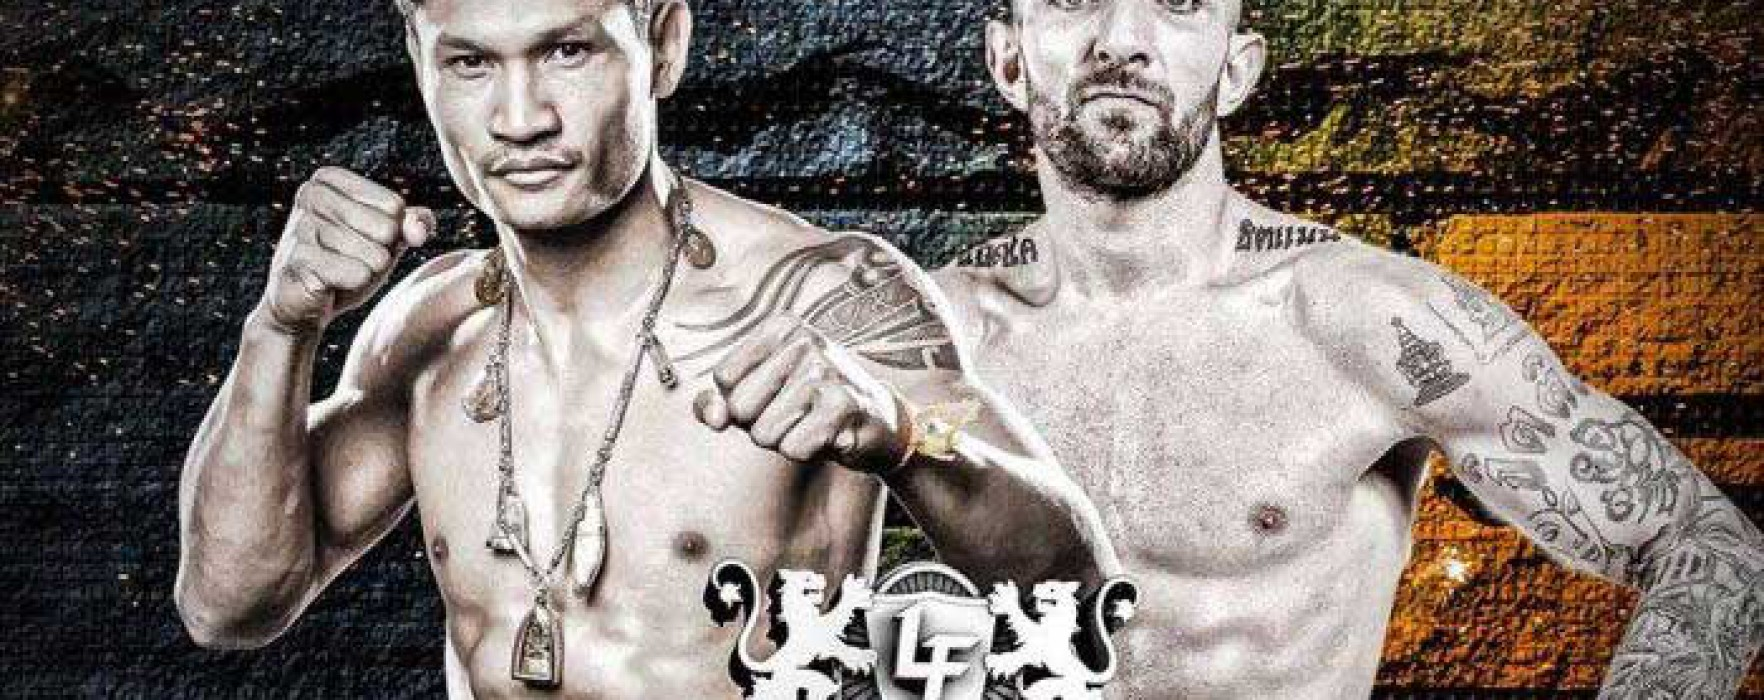 Card: Liam Harrison vs Malaipet Sasiprapa – Lion Fight 23 – 31st July 2015 – California, USA